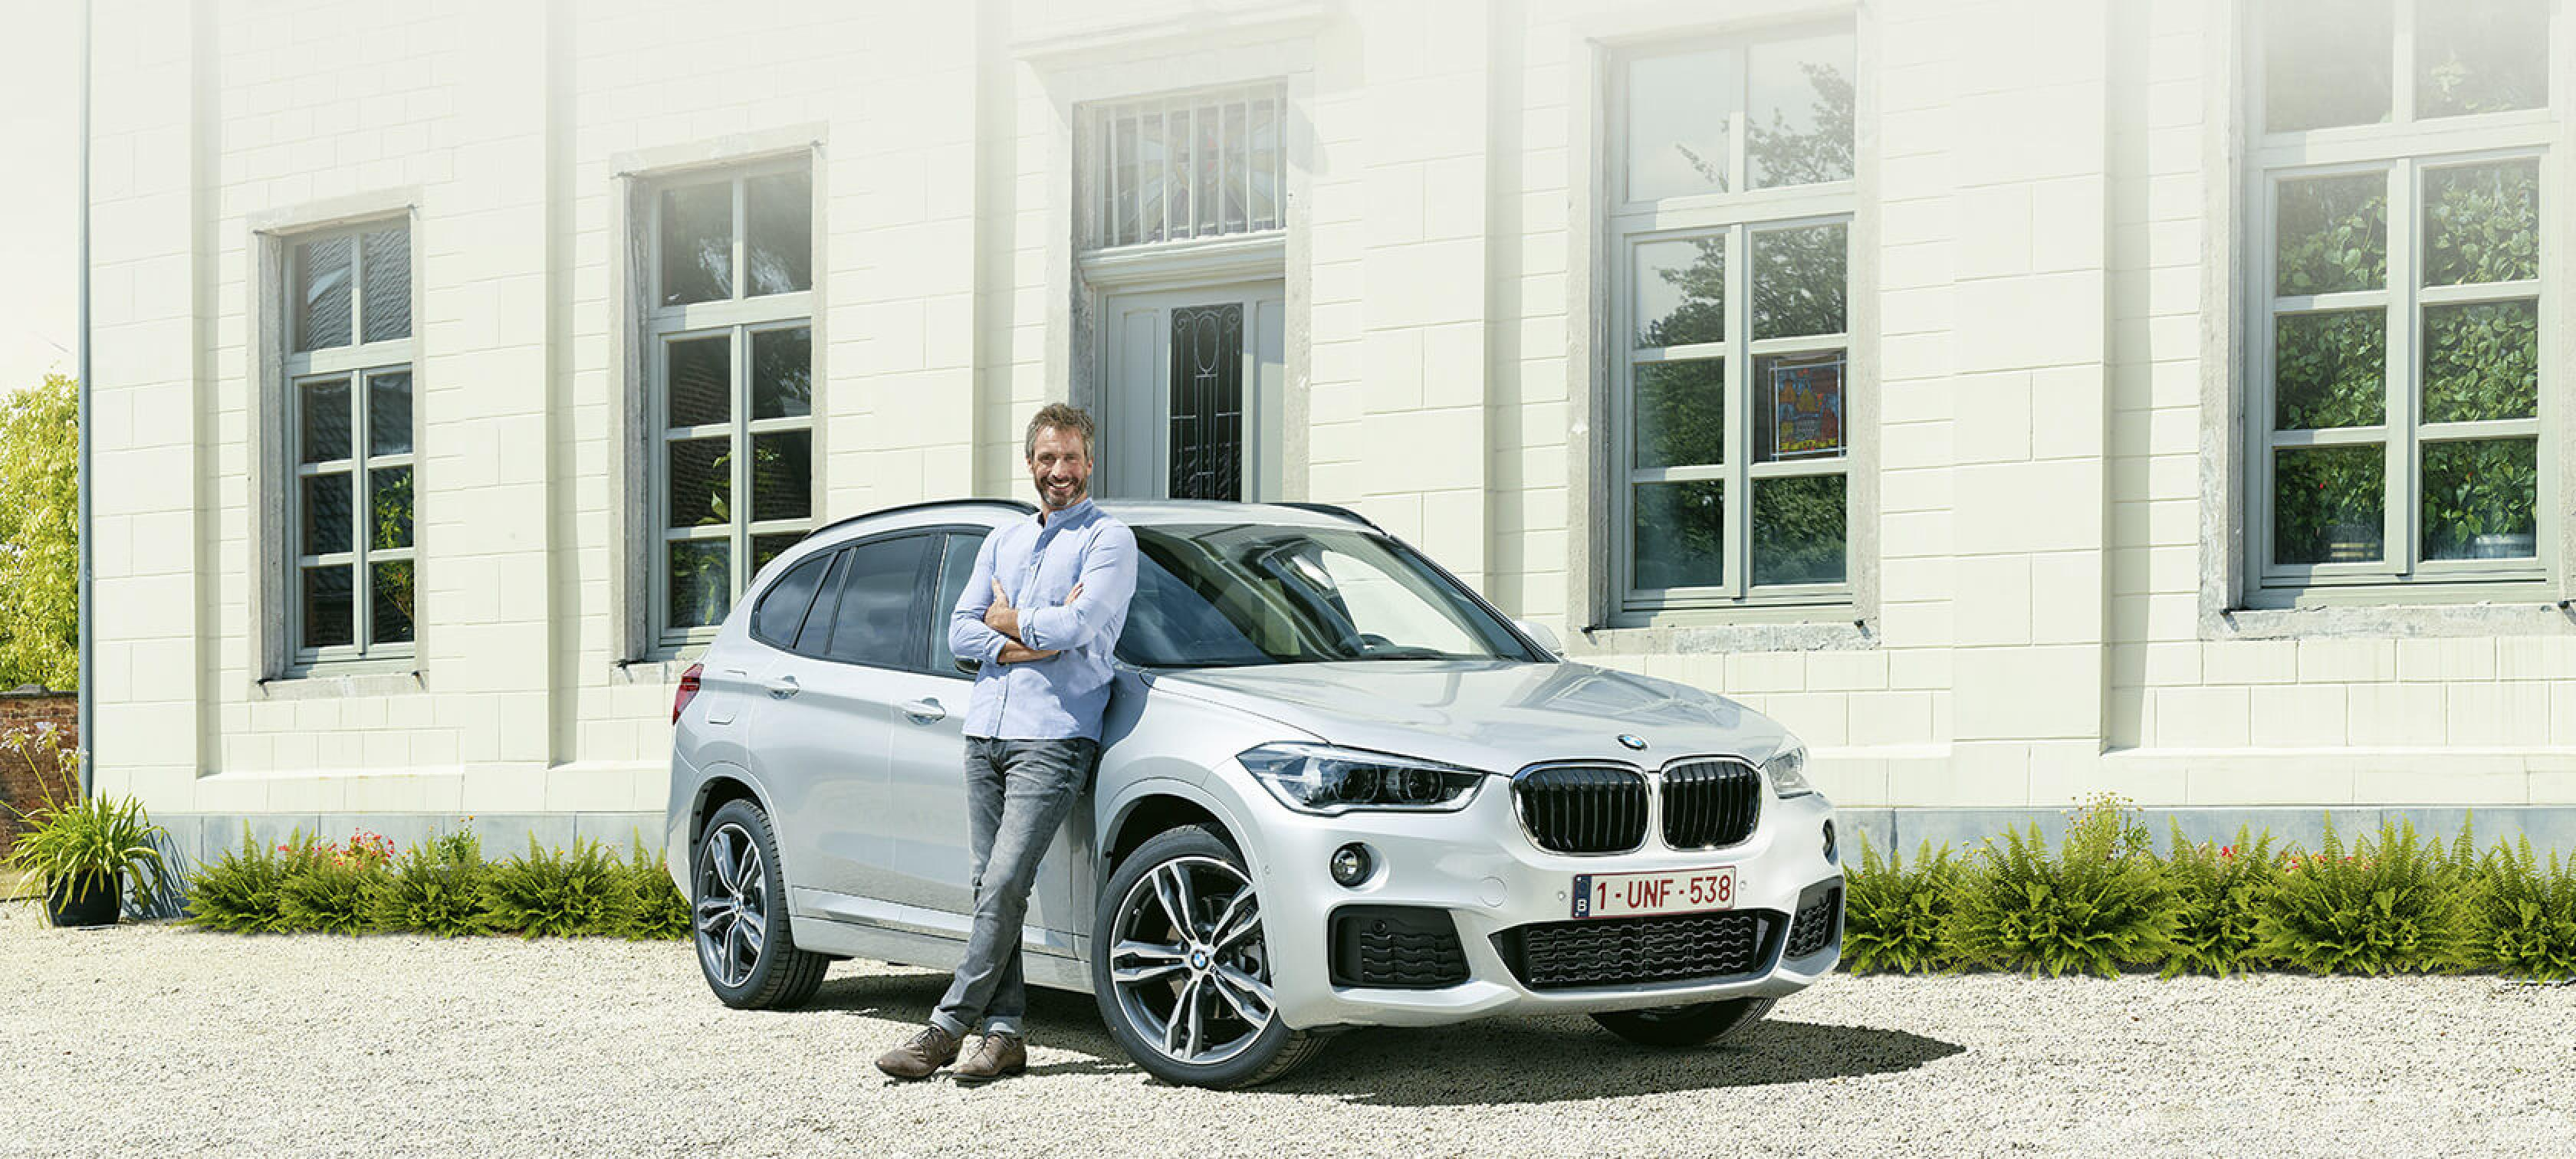 "LA BMW X1 ""NICOLAS"" EDITION."